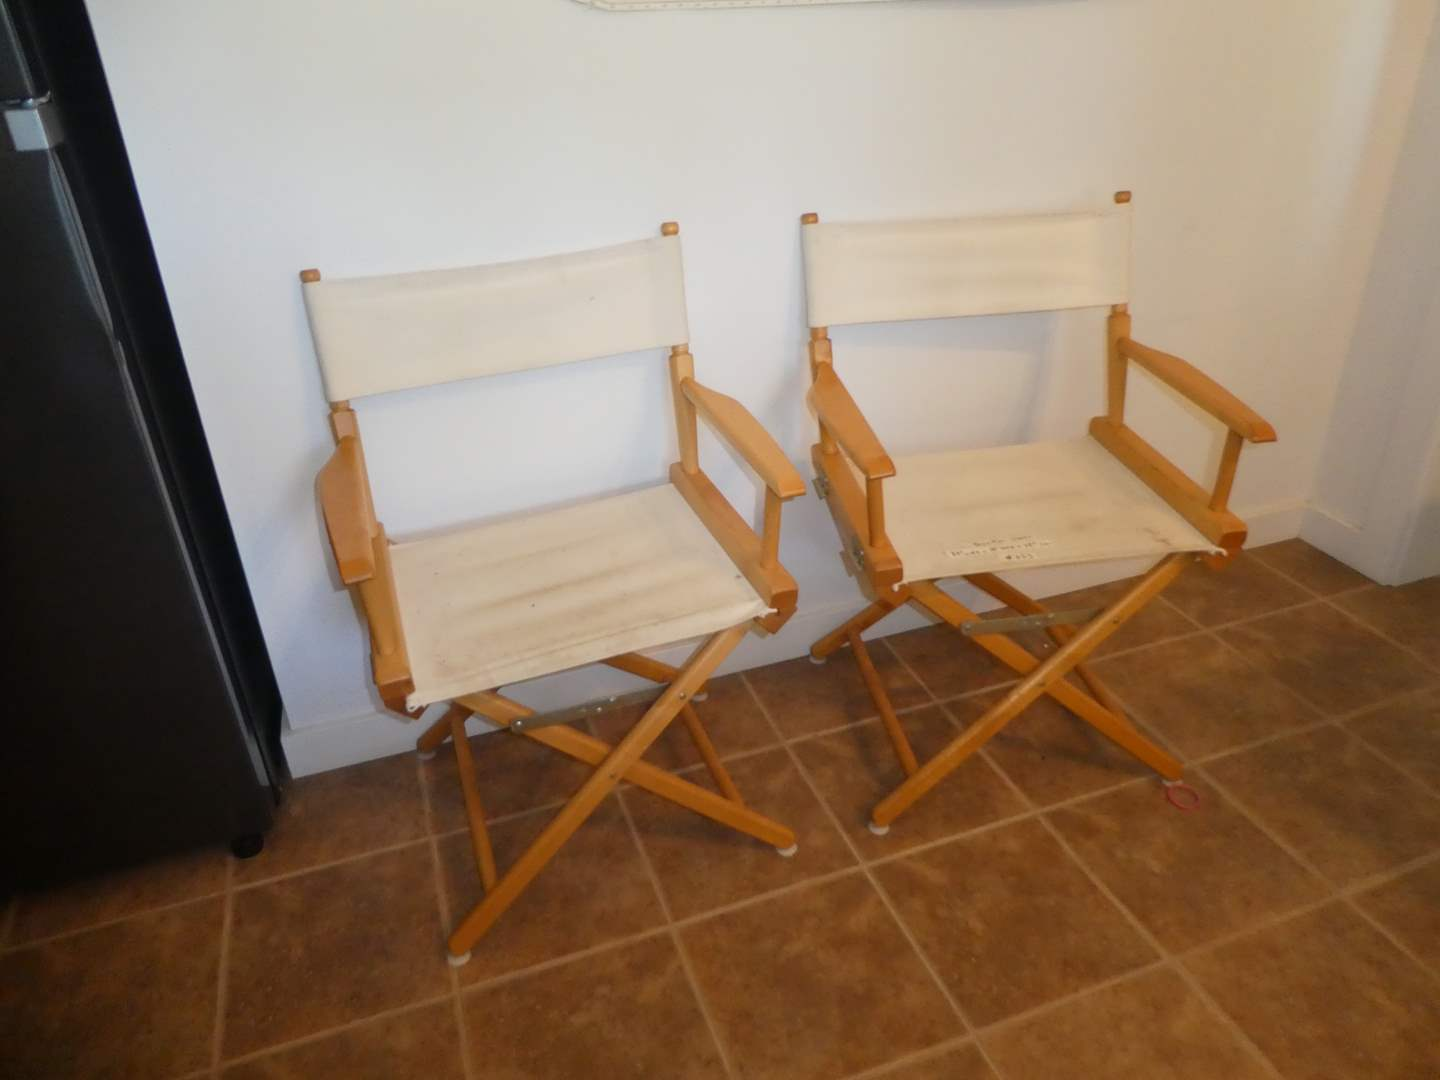 Lot # 223 - Two Telescope Casual World Famous Dining Height Director Chair, Natural with Varnish Frame(Needs Cleaning)